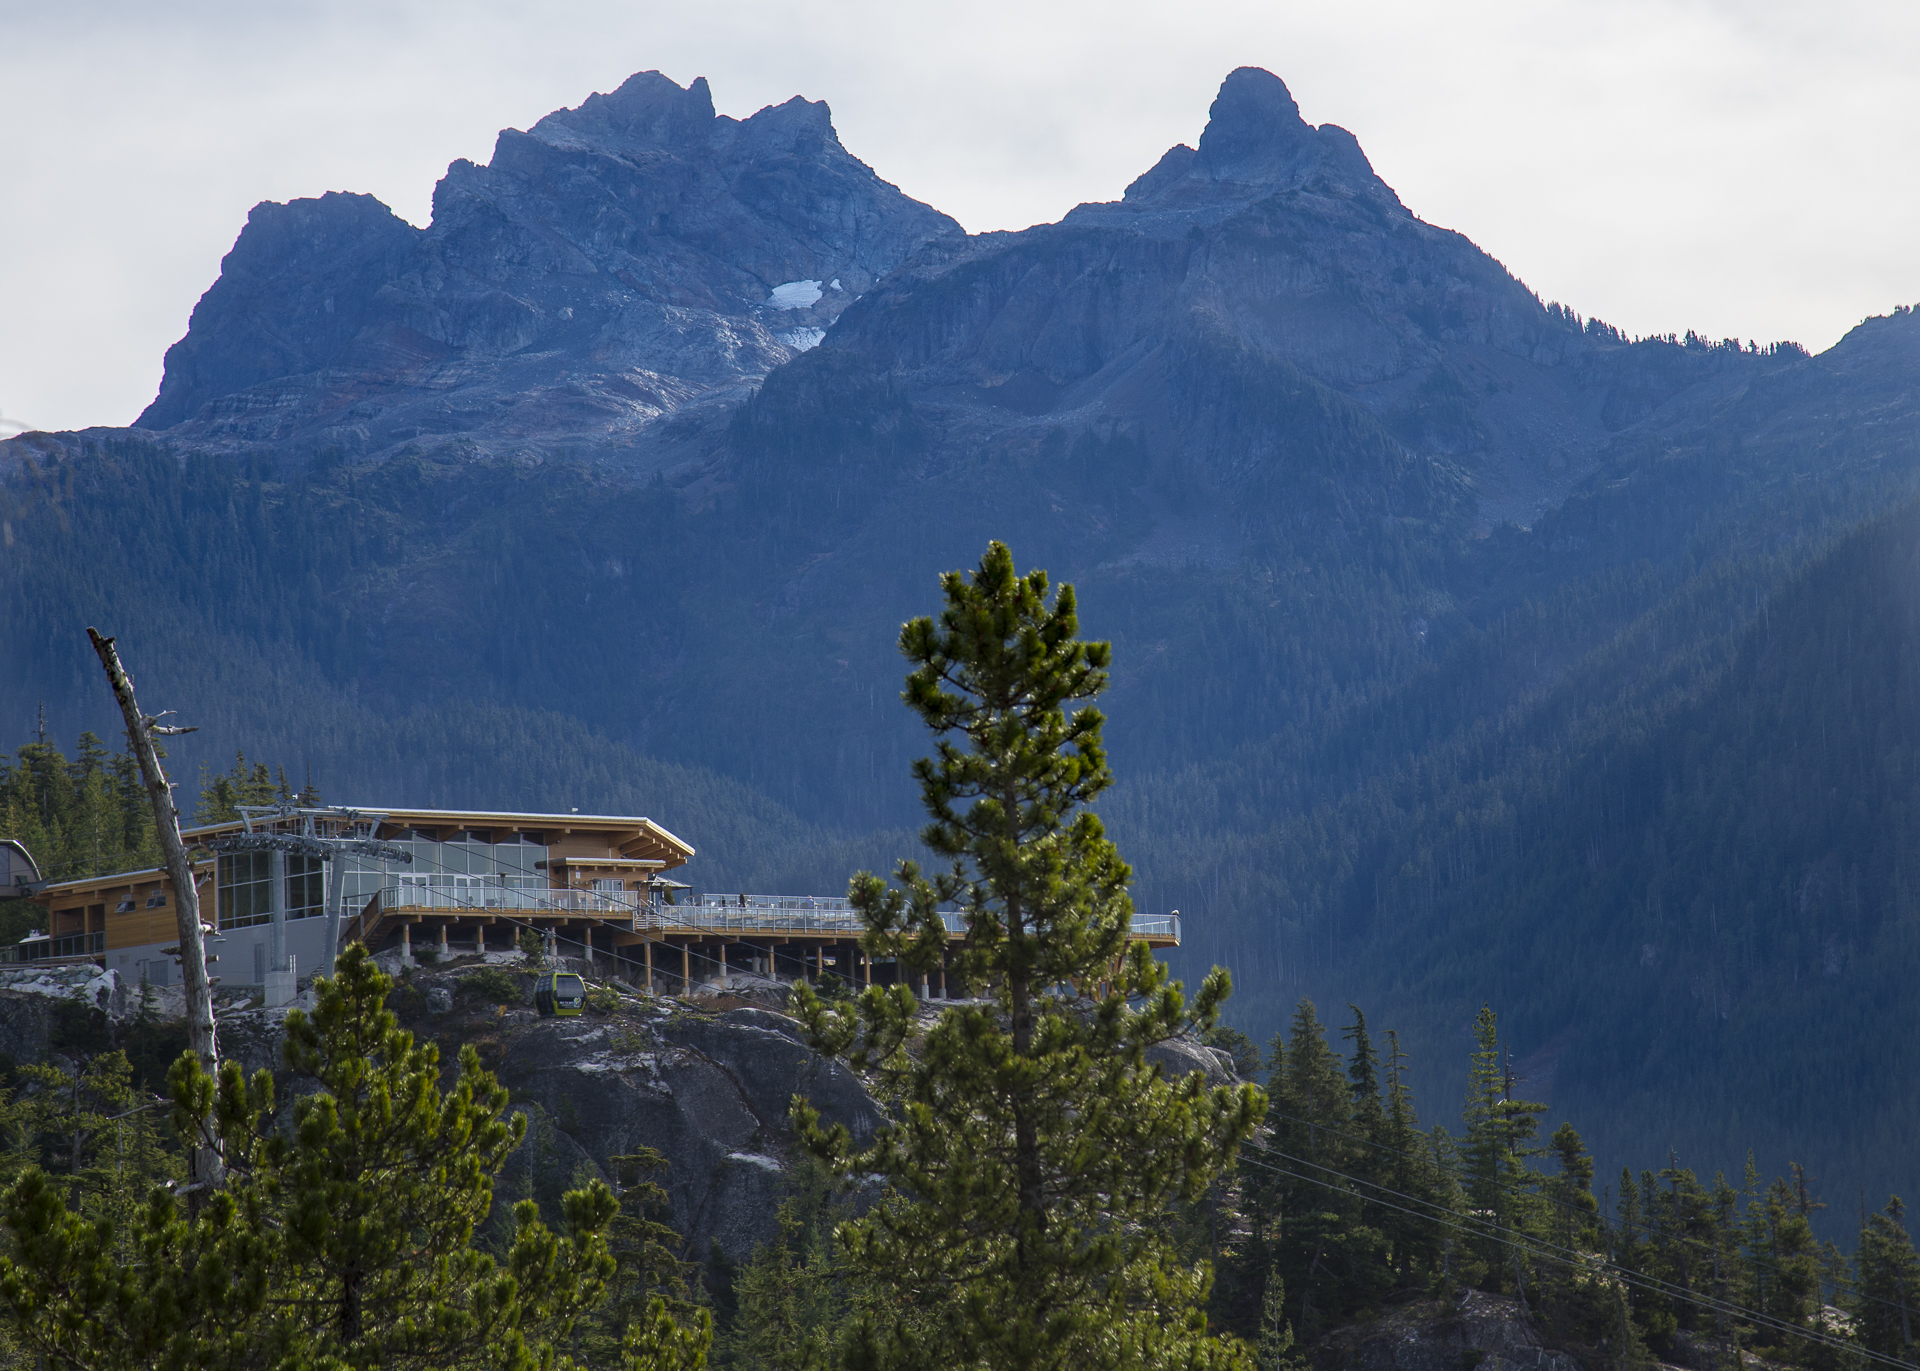 The chalet, with mountains looming in the background.